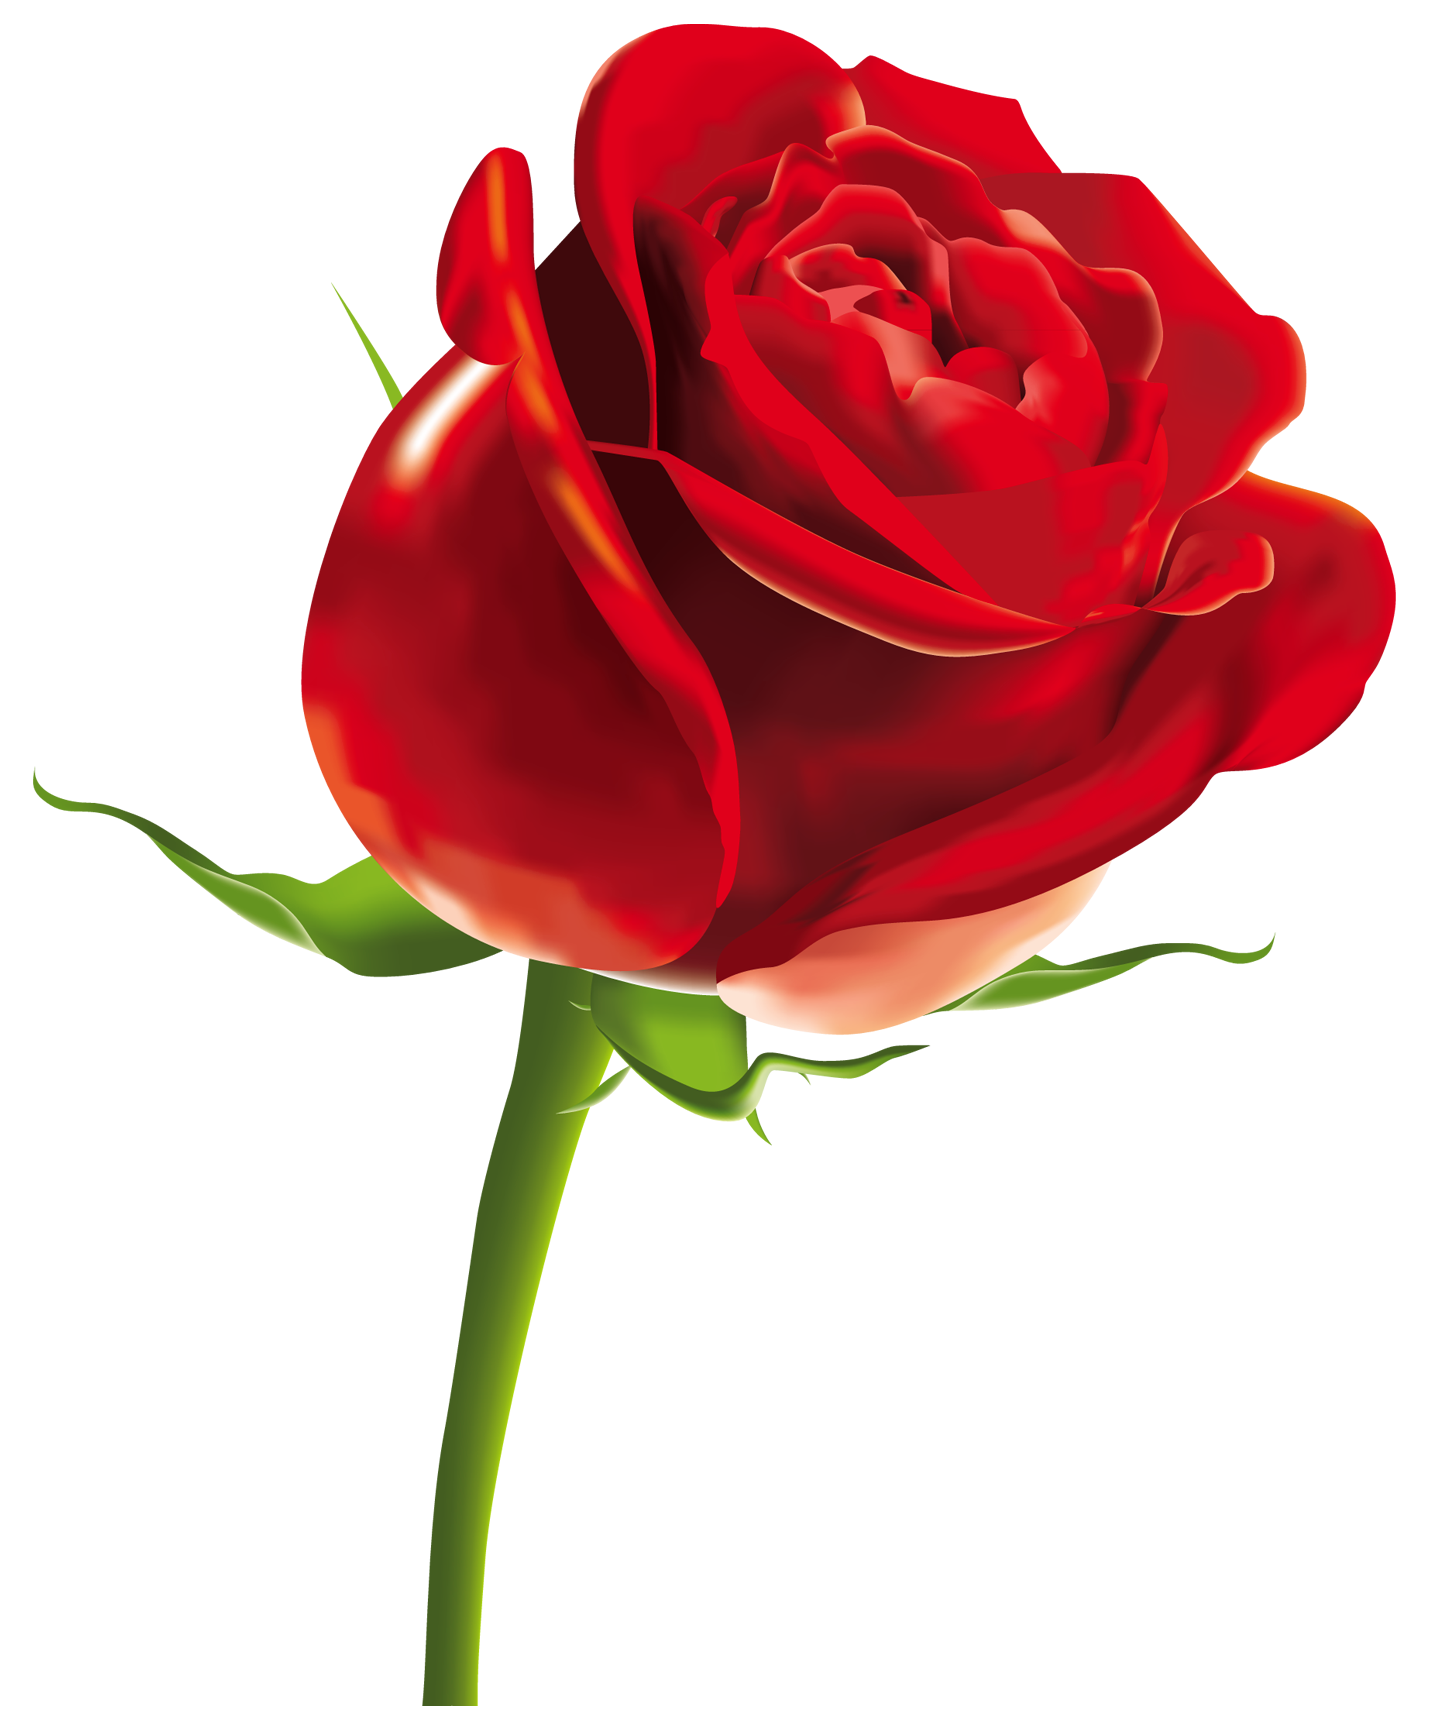 Red Flower clipart nice view #14